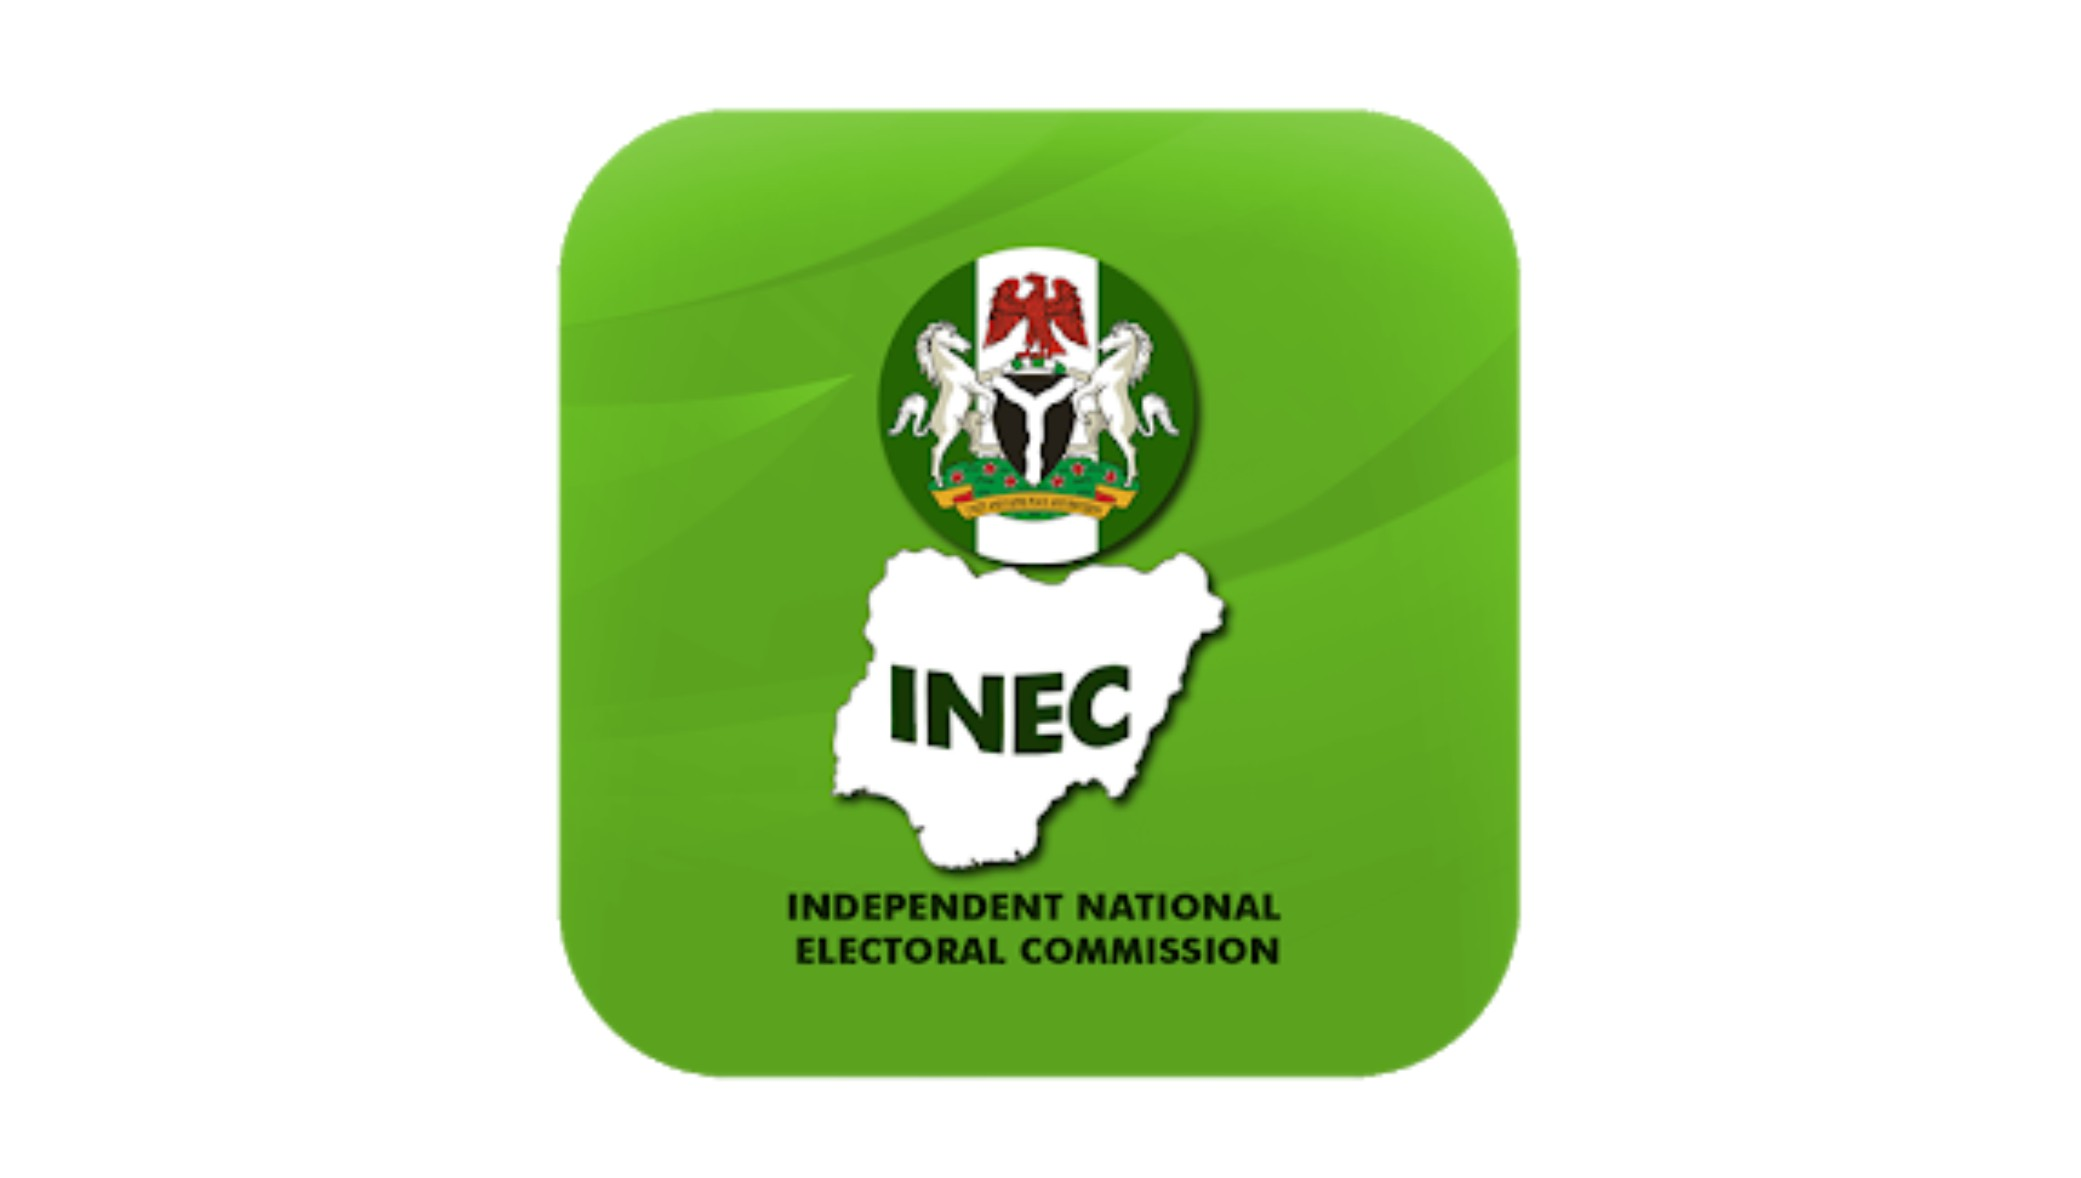 INEC Reviews 2019 General Elections In Bayelsa